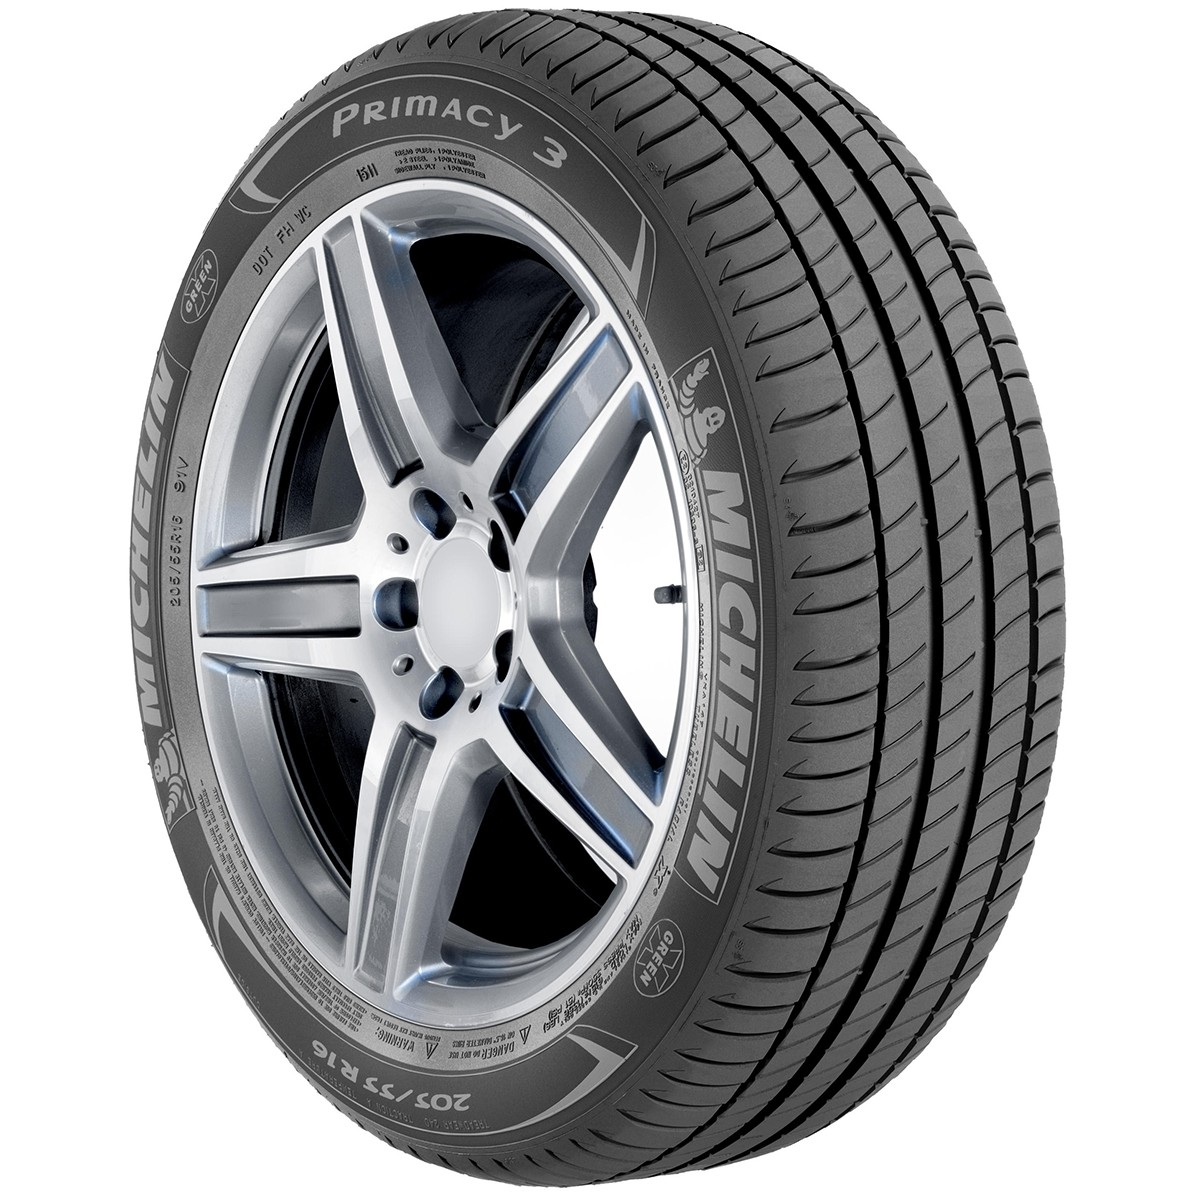 205/55 R16 [91] W PRIMACY 3 AO - MICHELIN